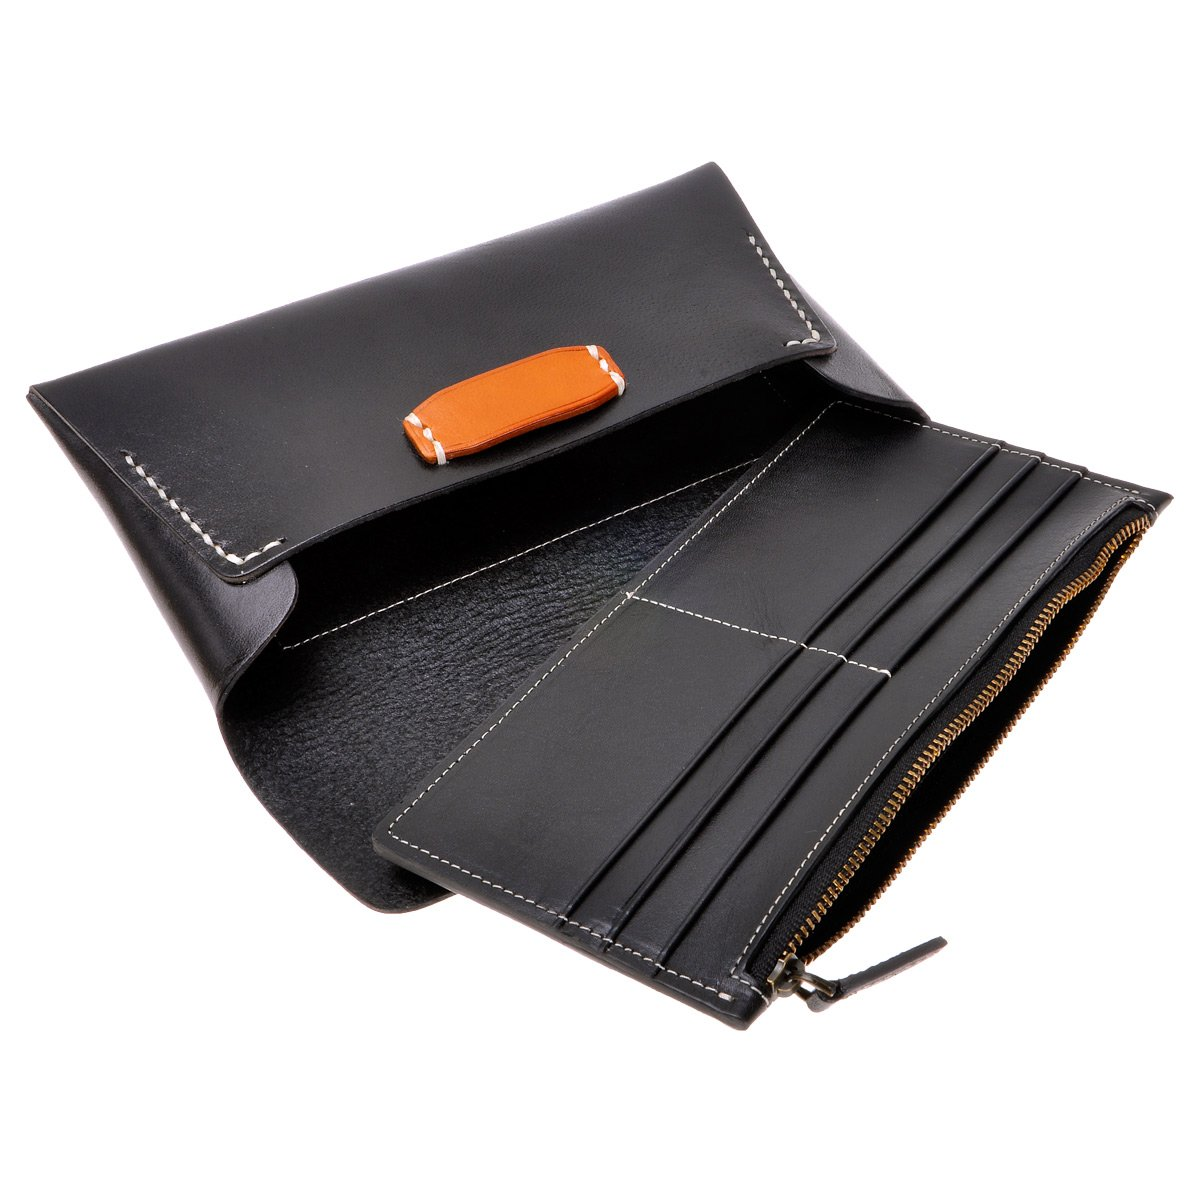 Leather Clutch Wallet ZLYC Envelope Design Passport Holder Unisx Long Purse with Removable Card Case